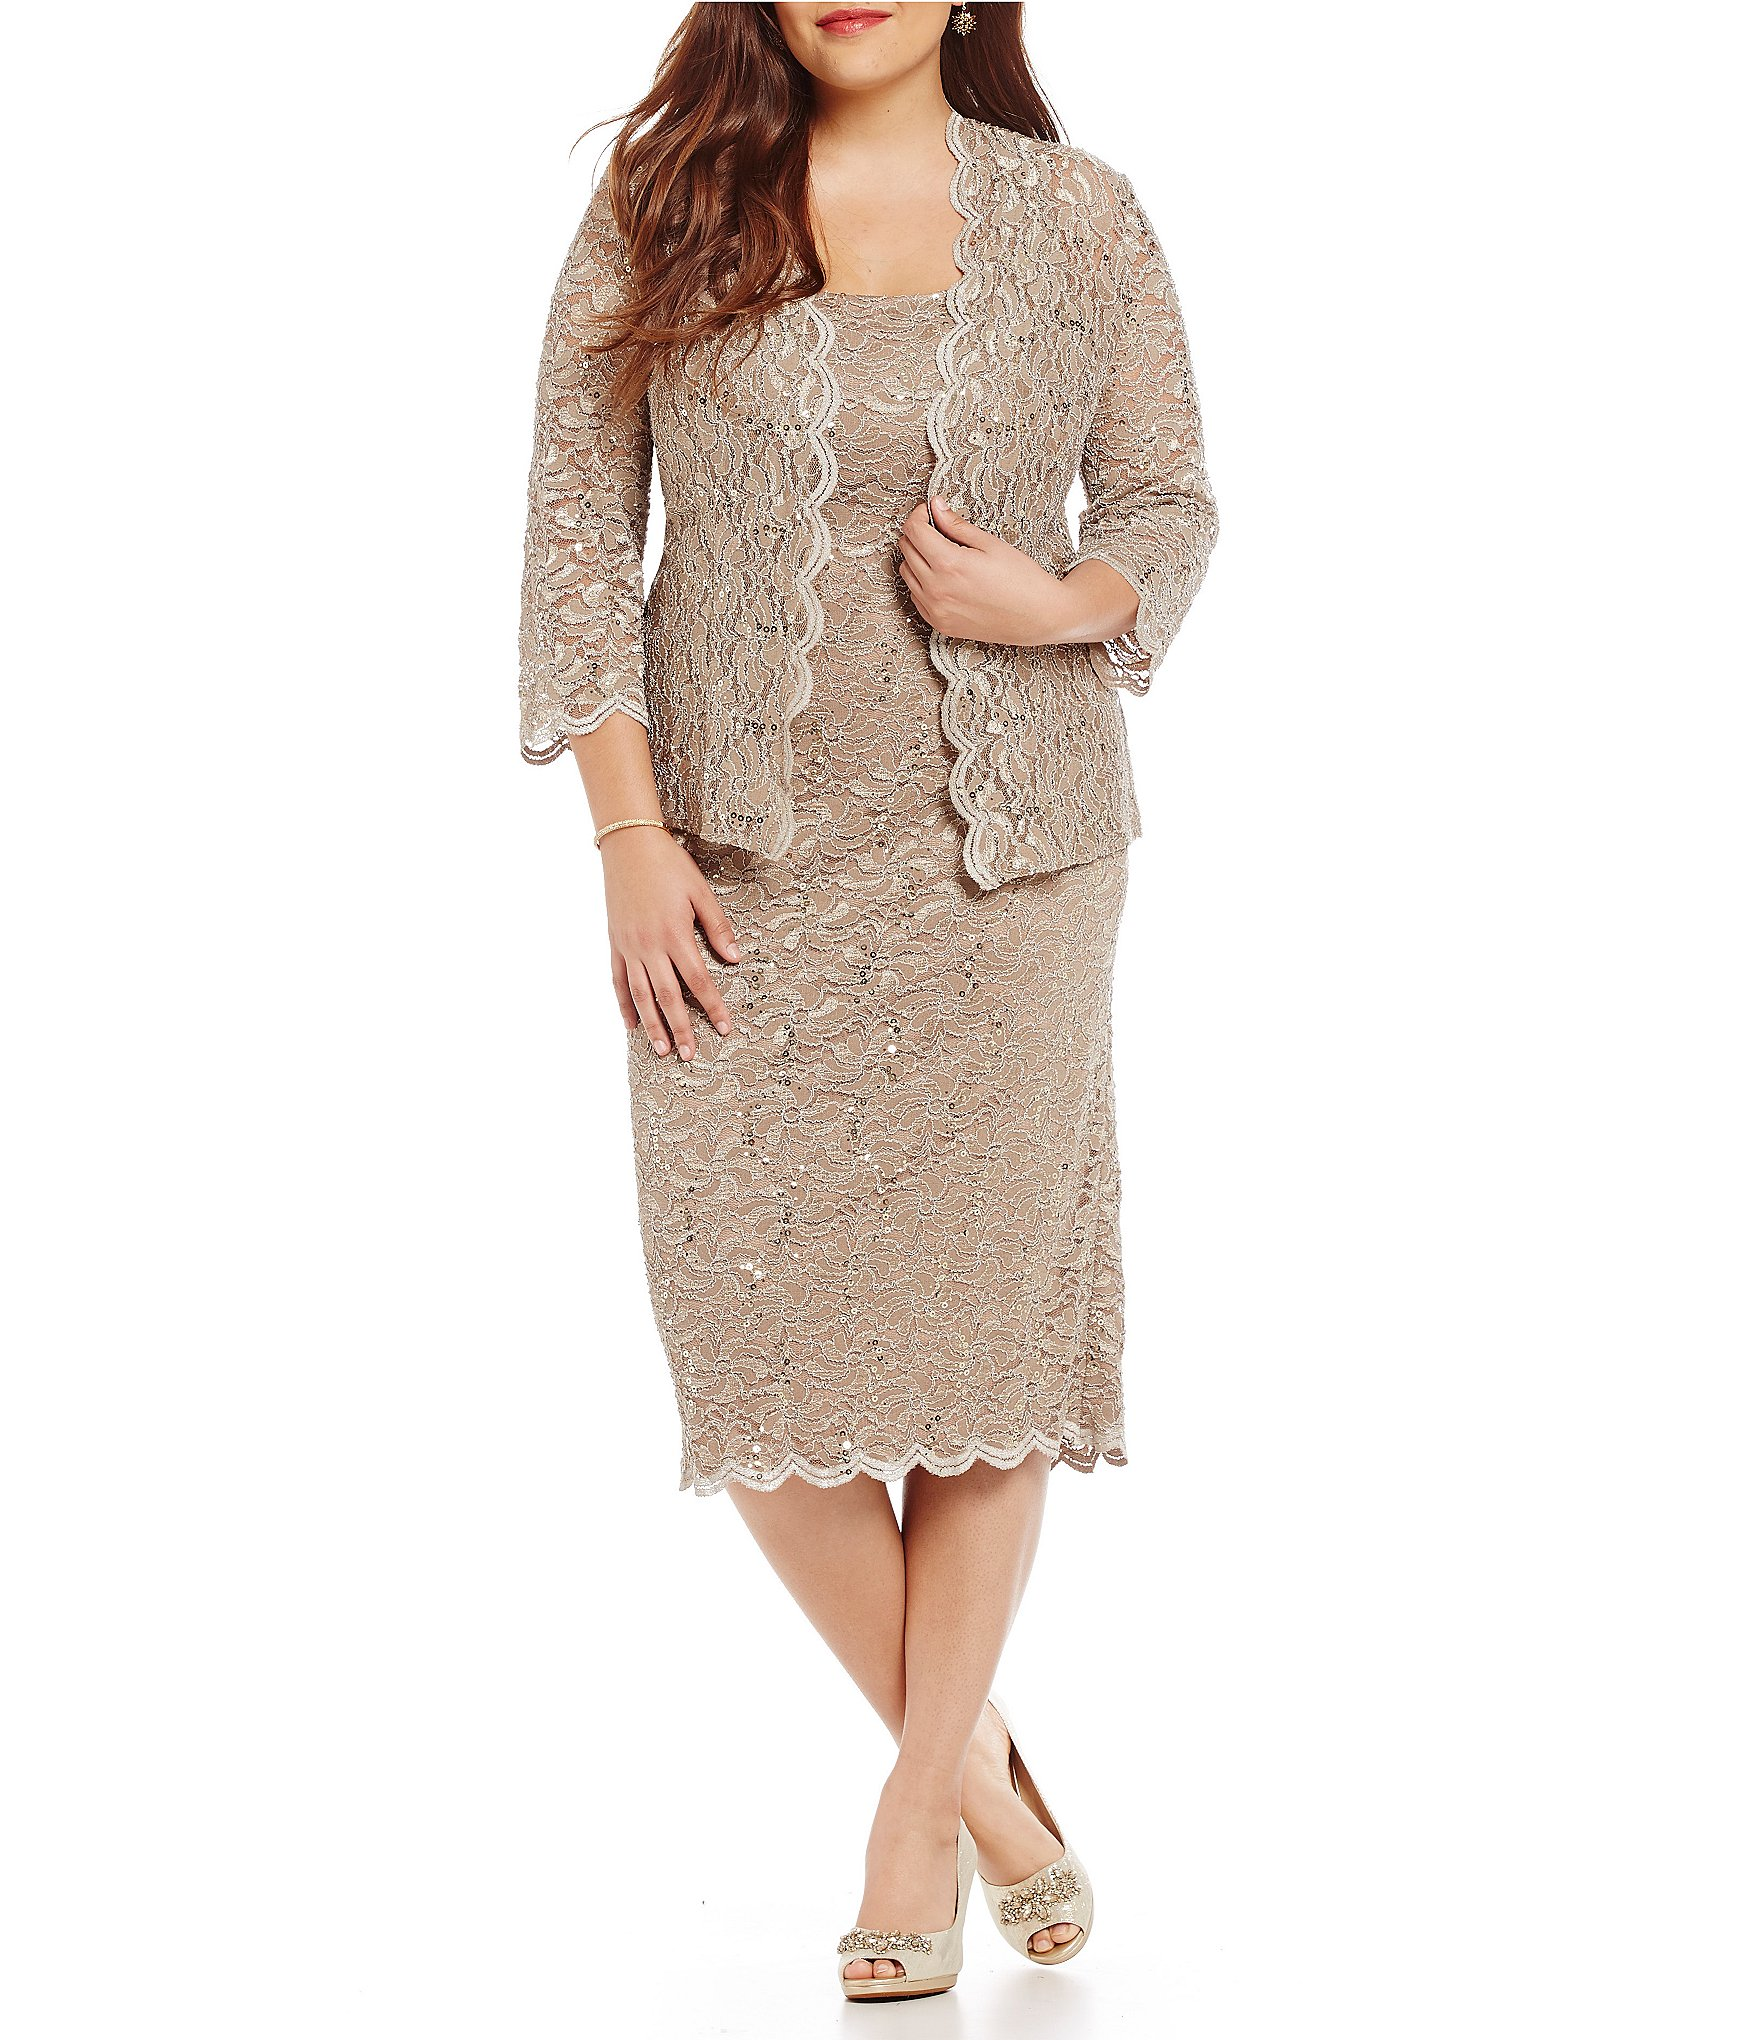 Plus Size Jacket Dresses Dillards